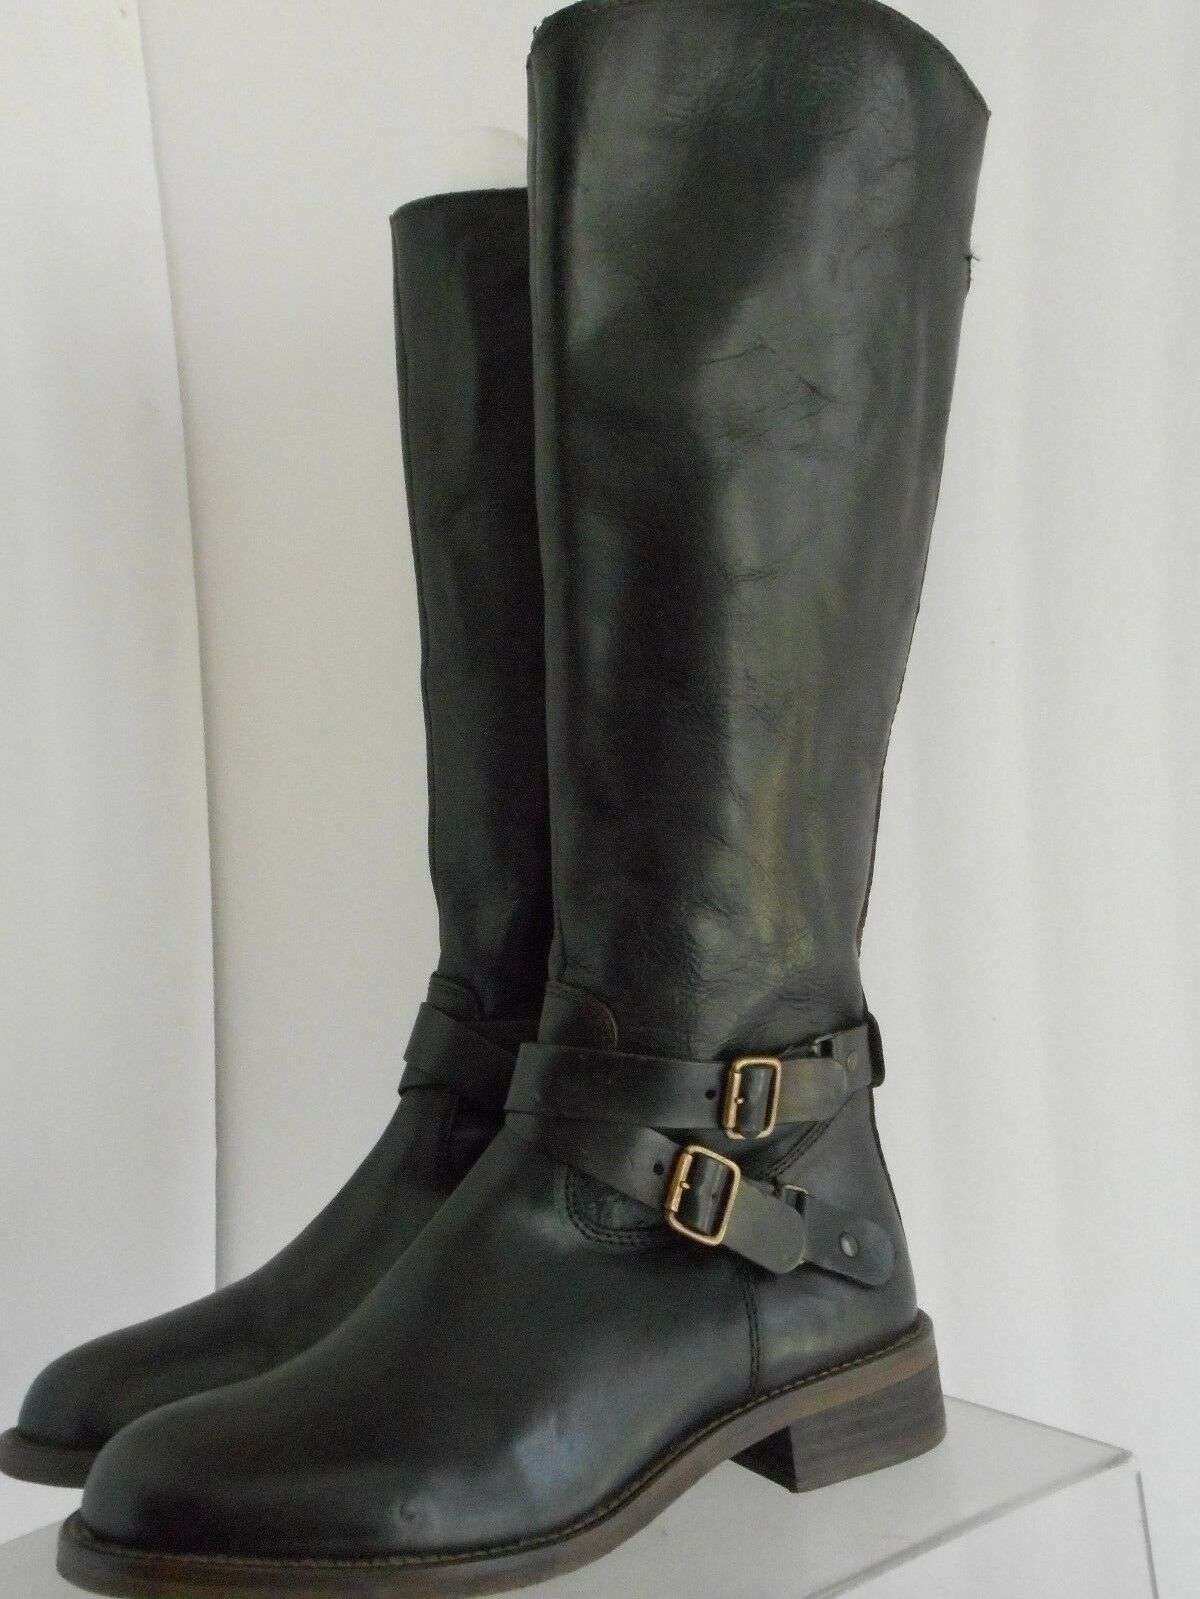 Hinge Devin Boots Riding Equestrian Leather Knee High US 6.5 M 140